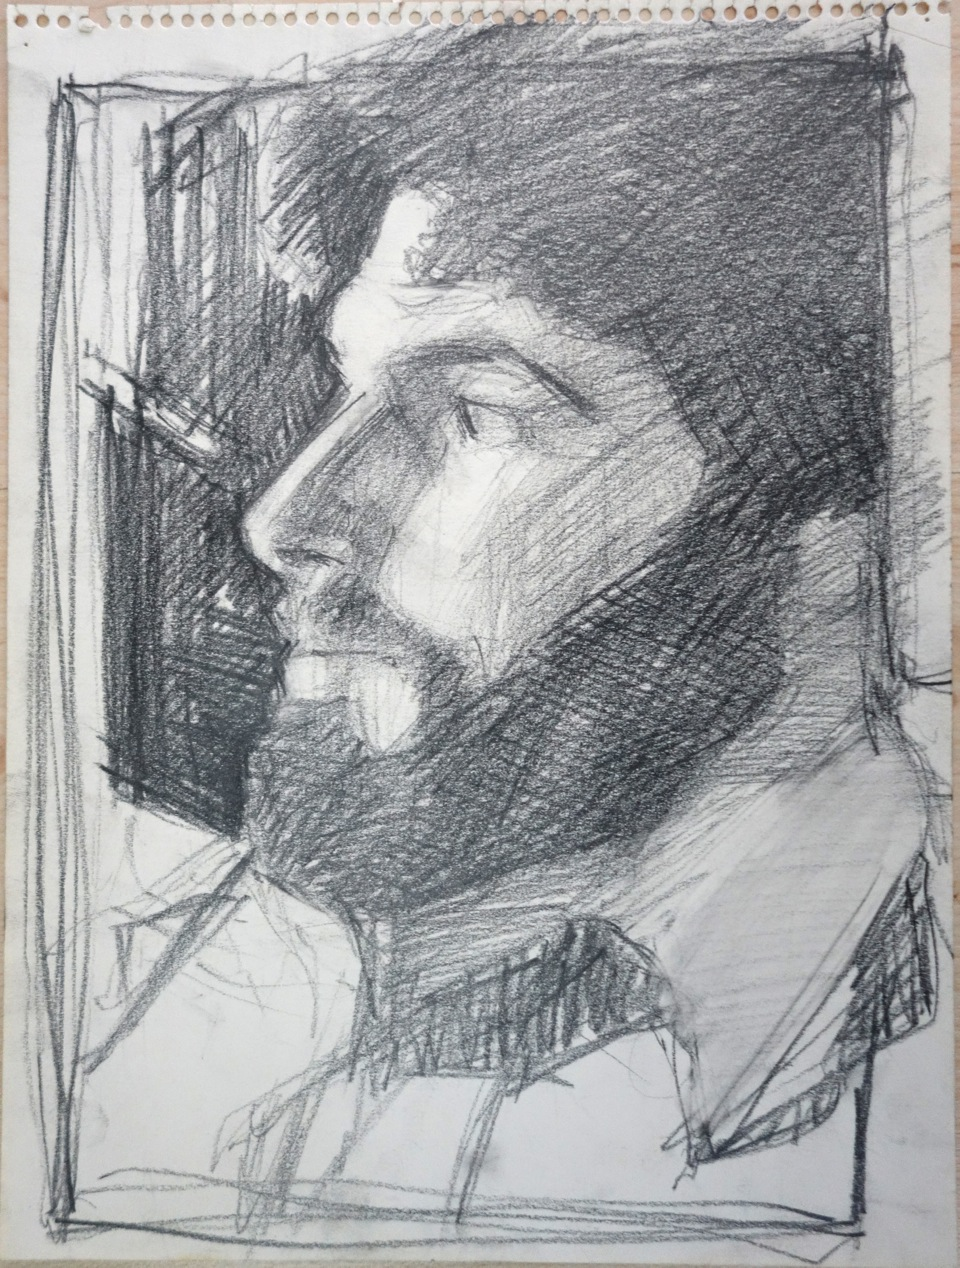 Miles Jaffe, drawing by Stacey Lewis